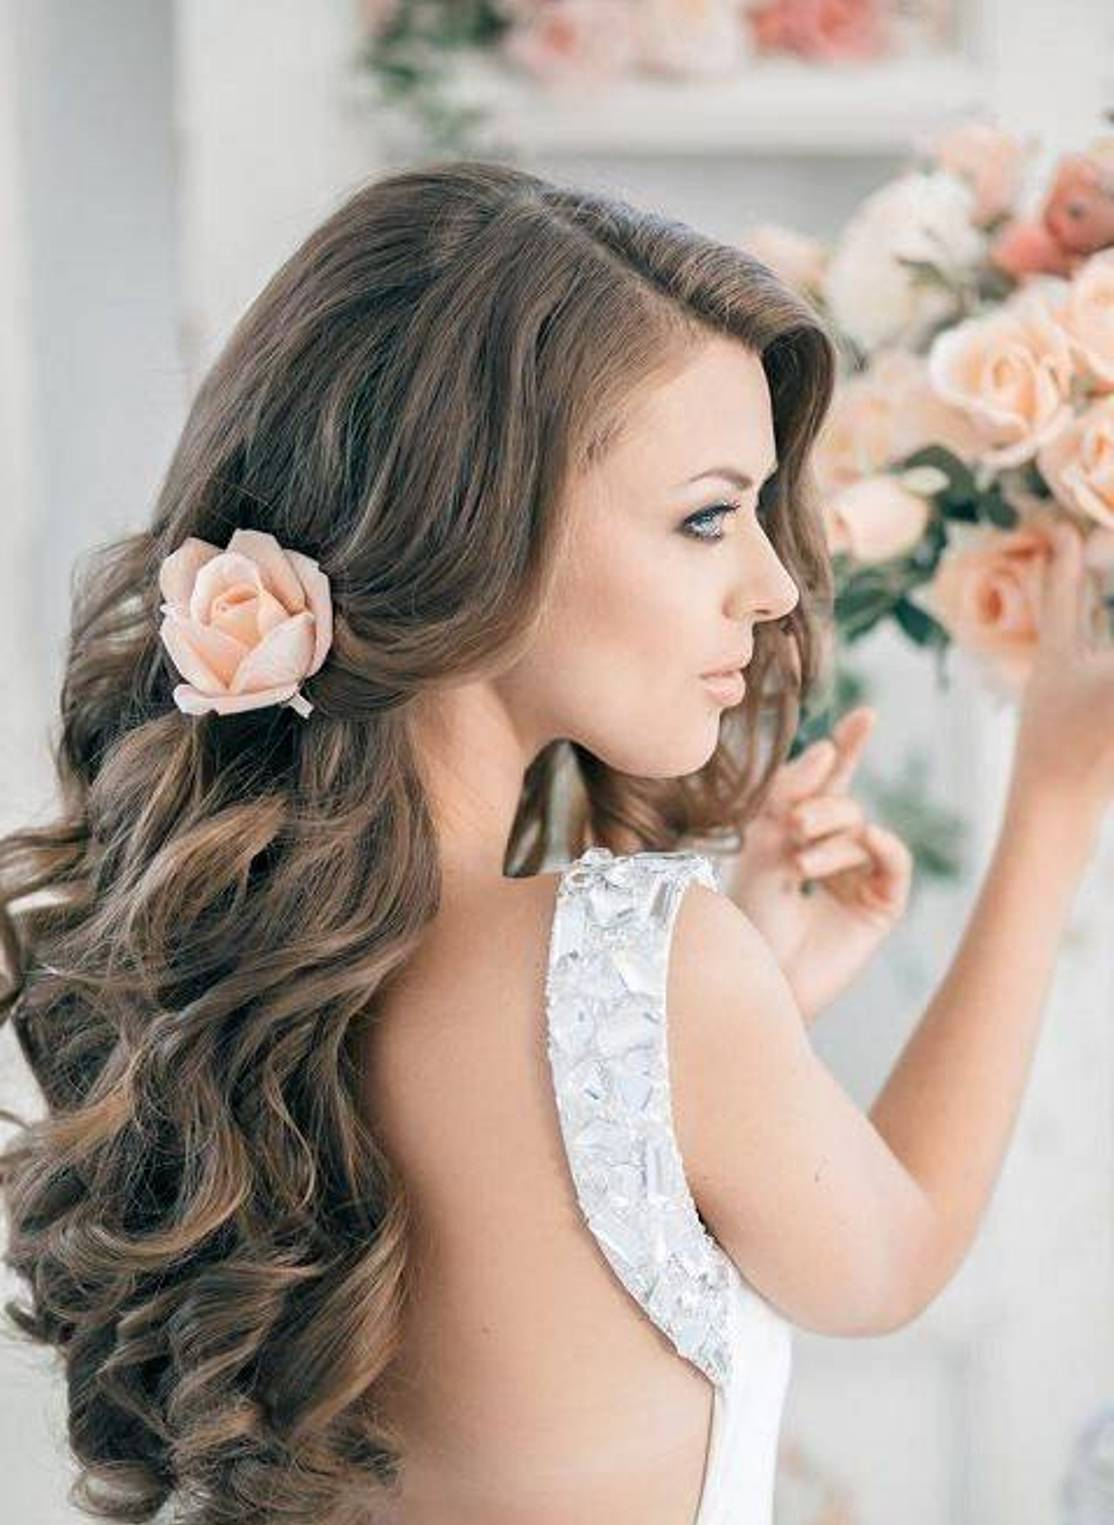 long hair down wedding styles bridal hairstyles sirmione wedding 1296 | 25 Curly Hair Wedding Hairstyles 25